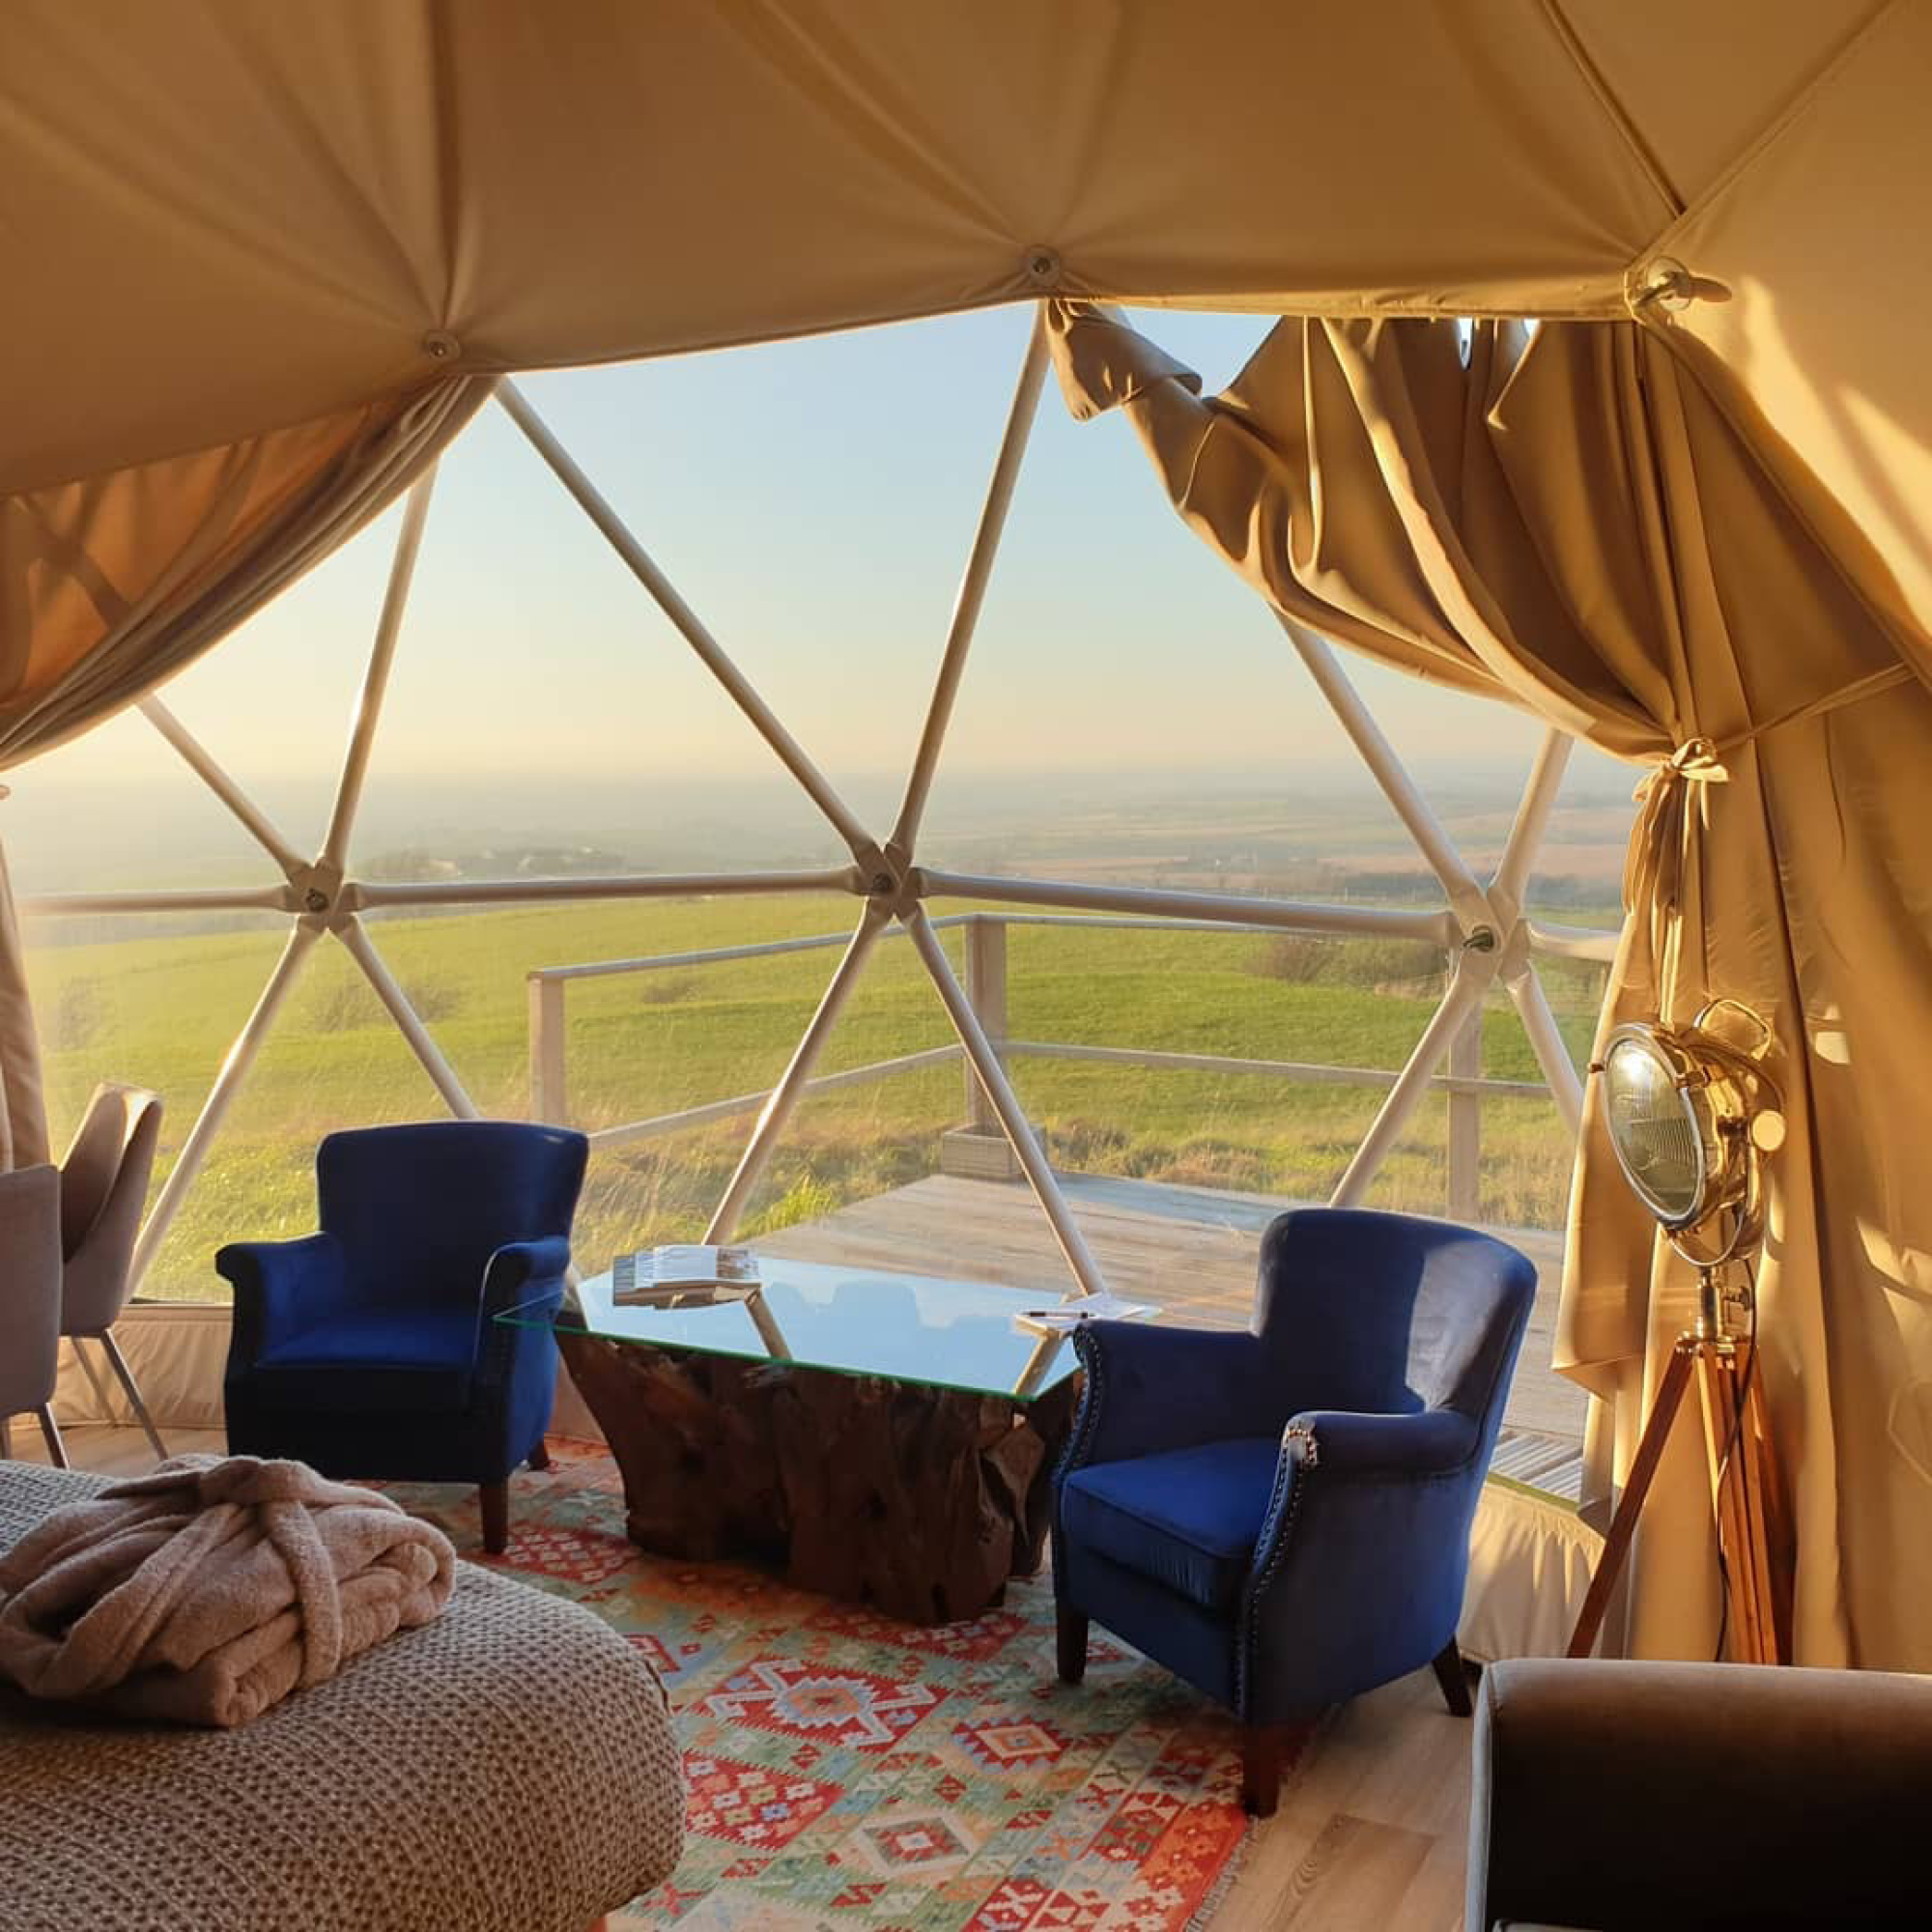 Each dome is like a room you would expect to find in a luxury boutique hotel, with all the essential facilities for a sumptuously comfortable getaway